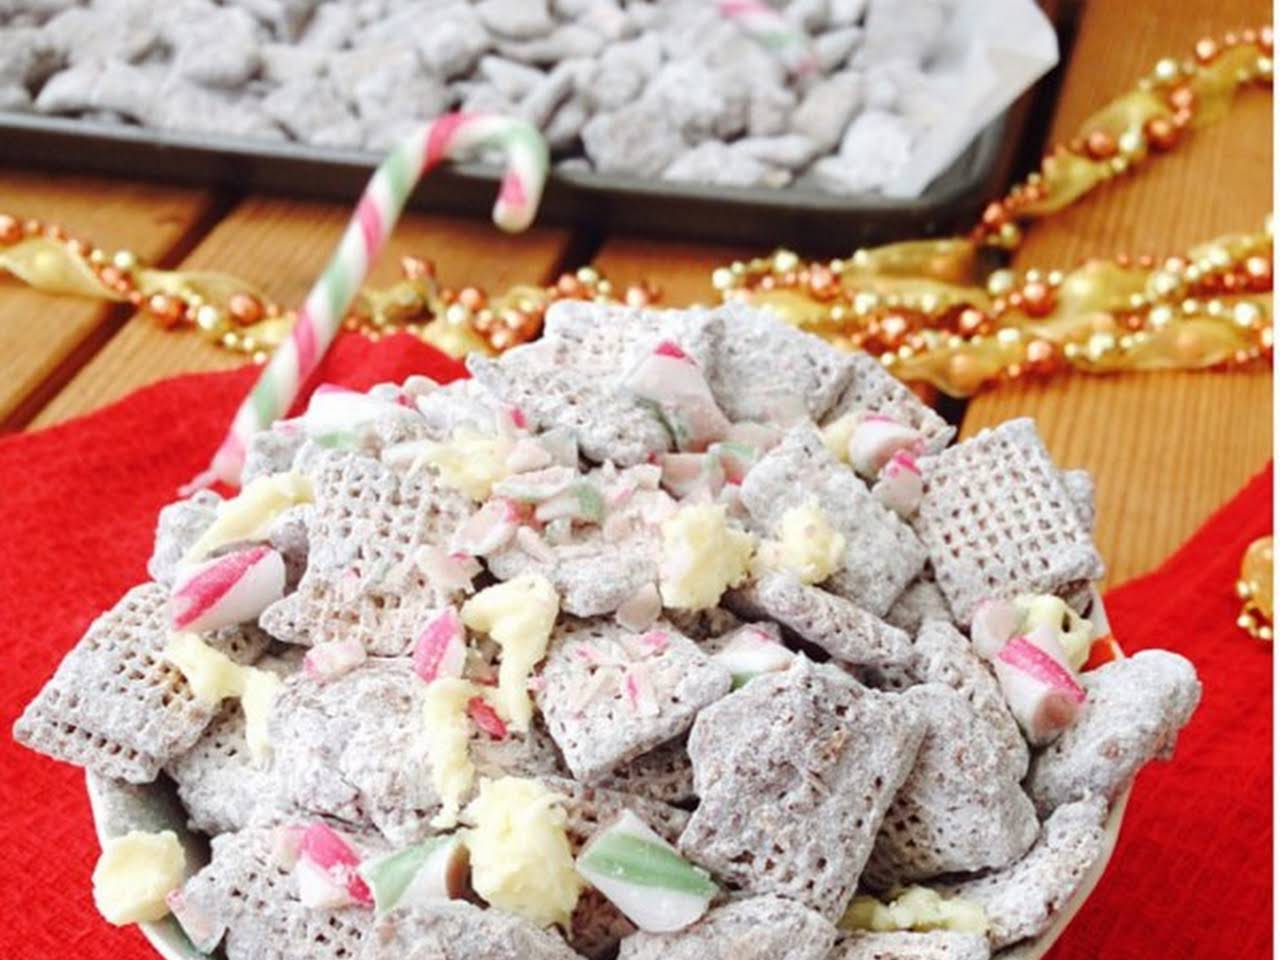 10 Best Shredded Wheat Cereal Recipes Yummly